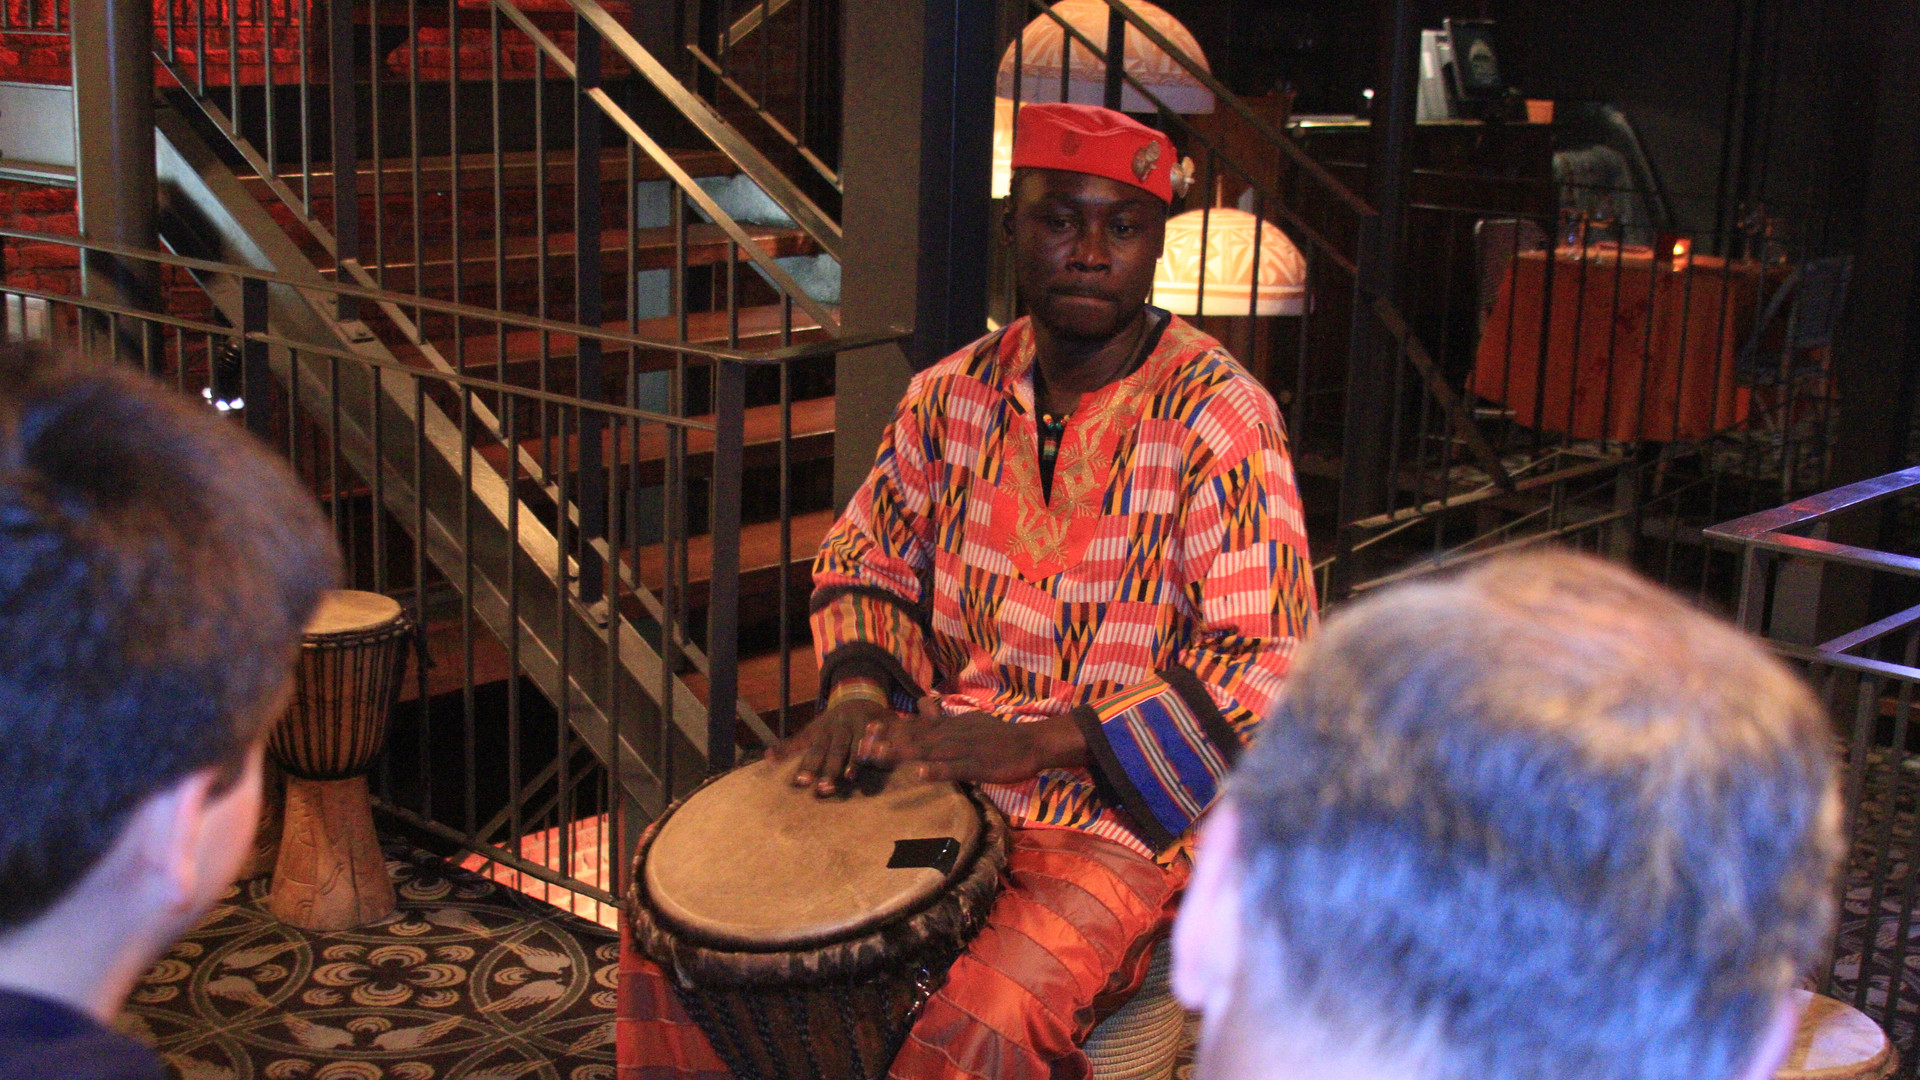 Get Your Congas on!